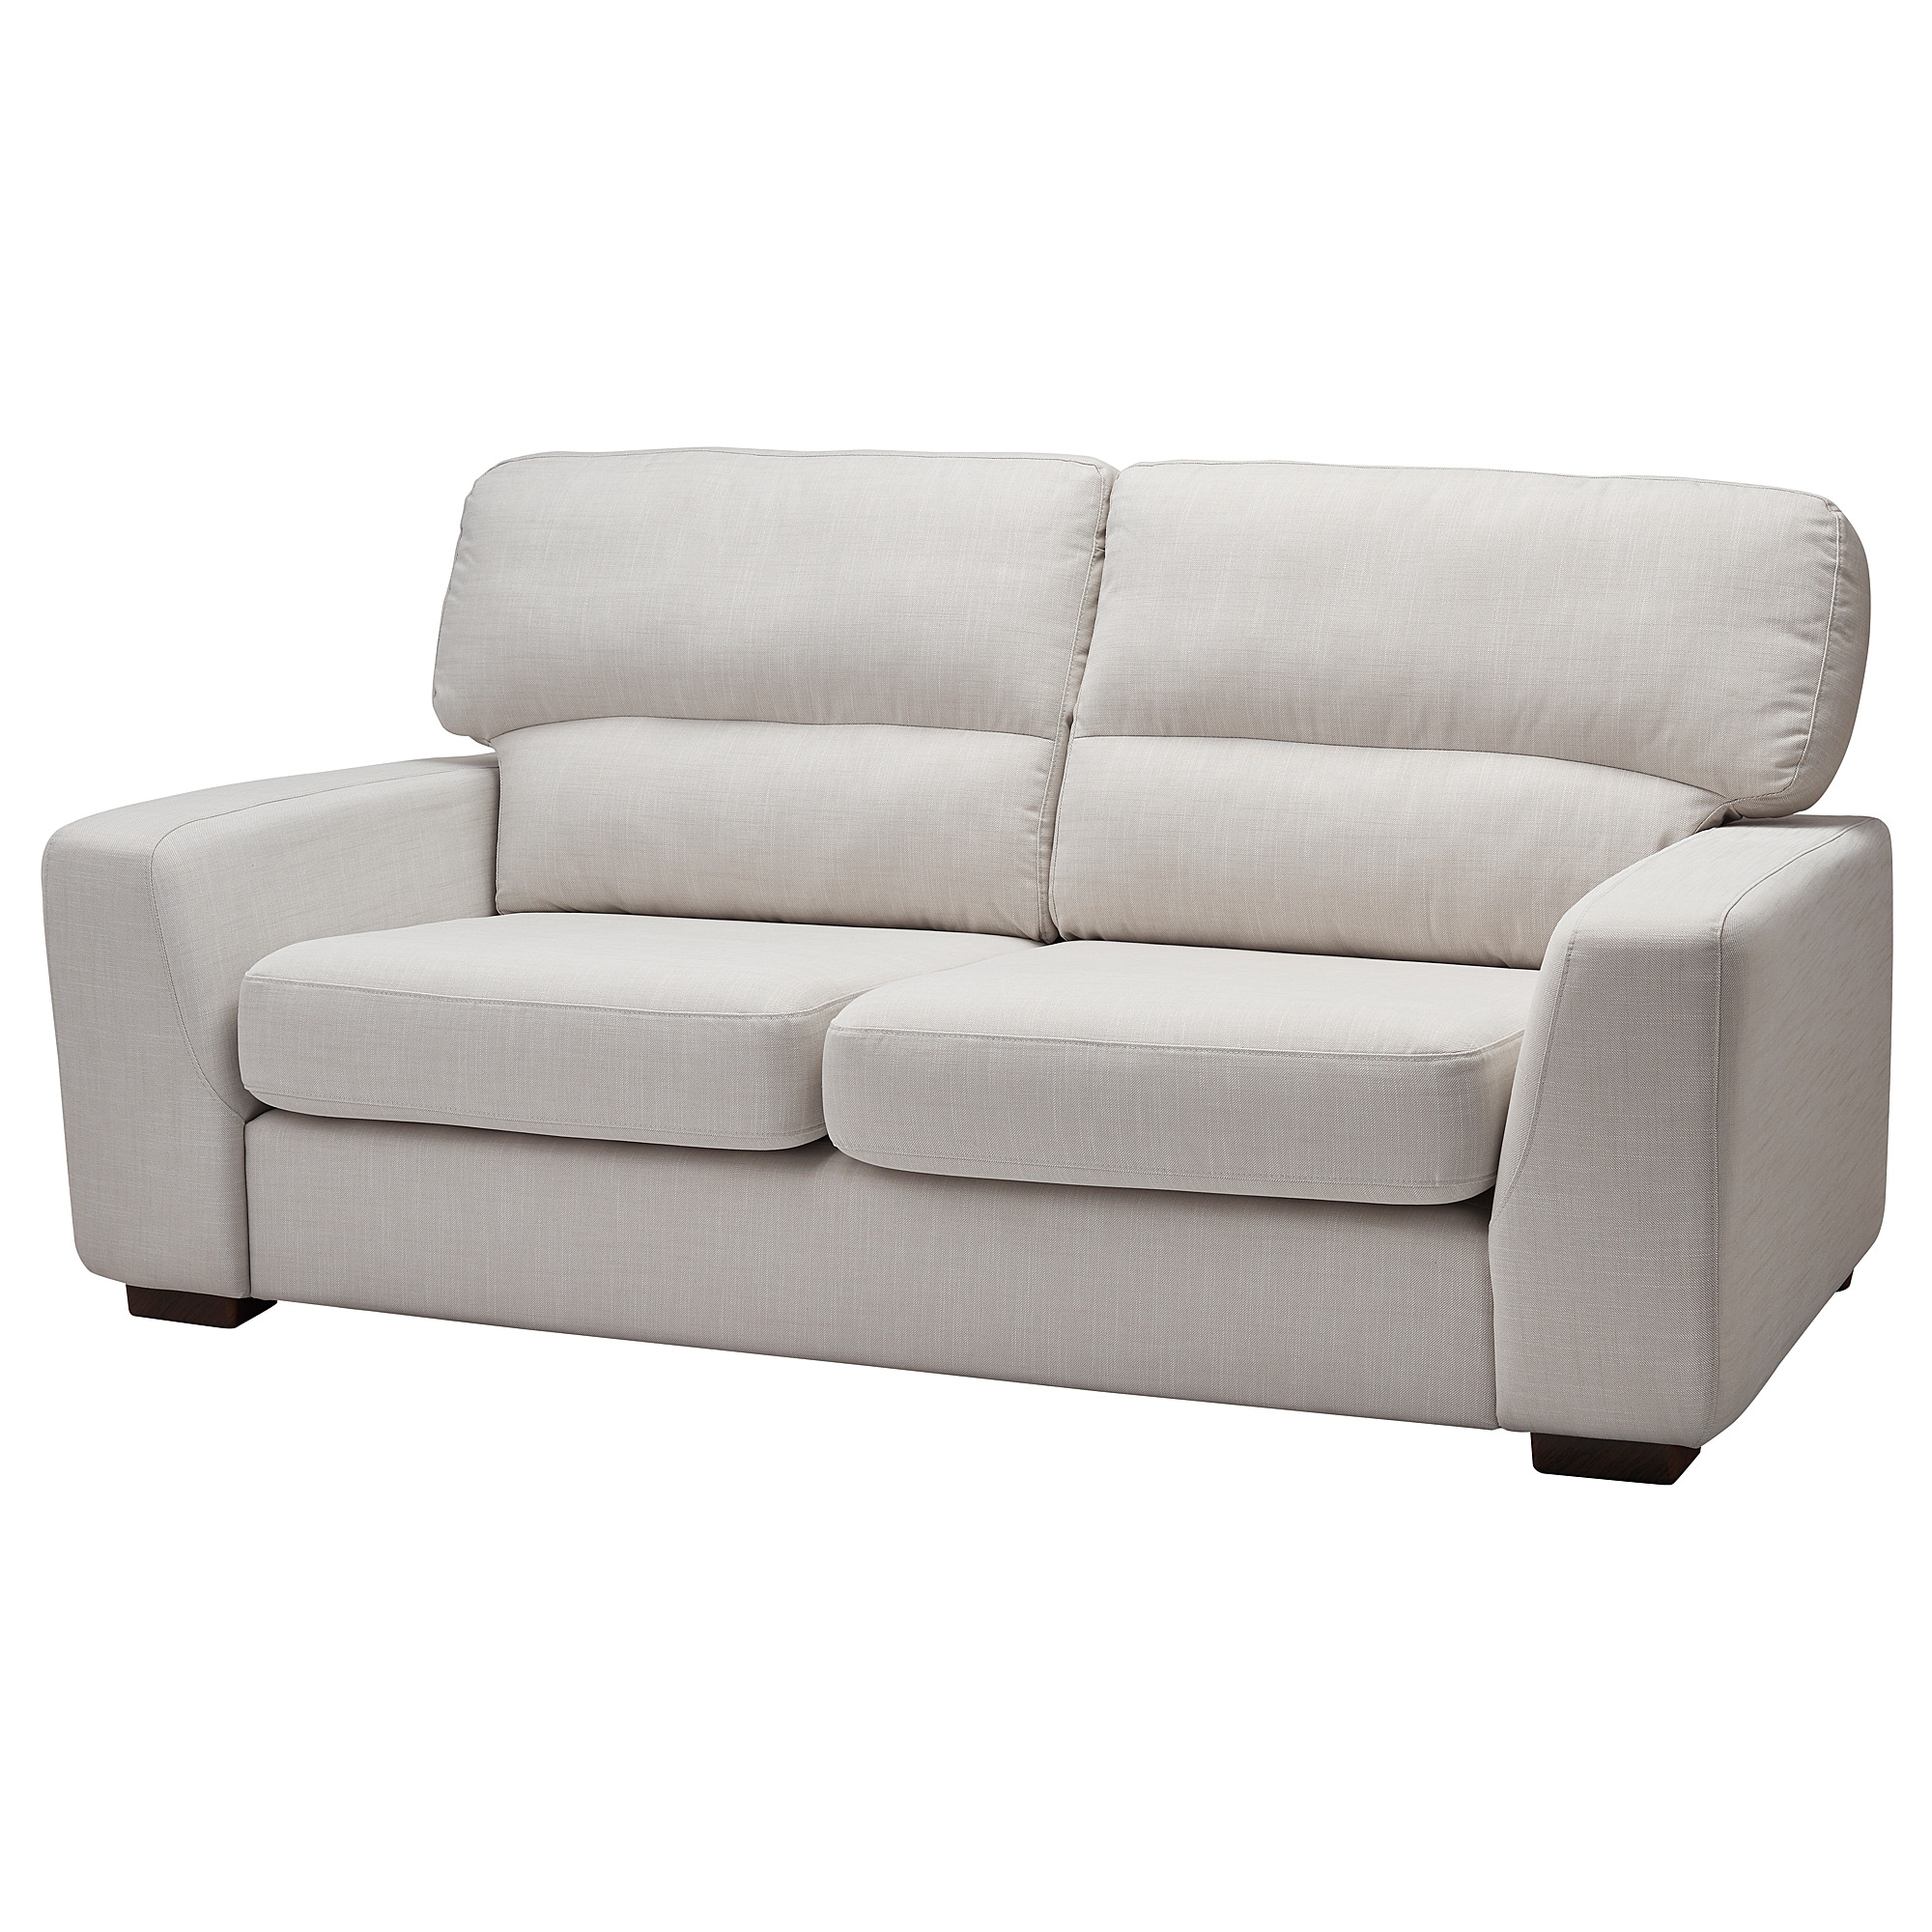 MARDAL Three-seat sofa - IKEA